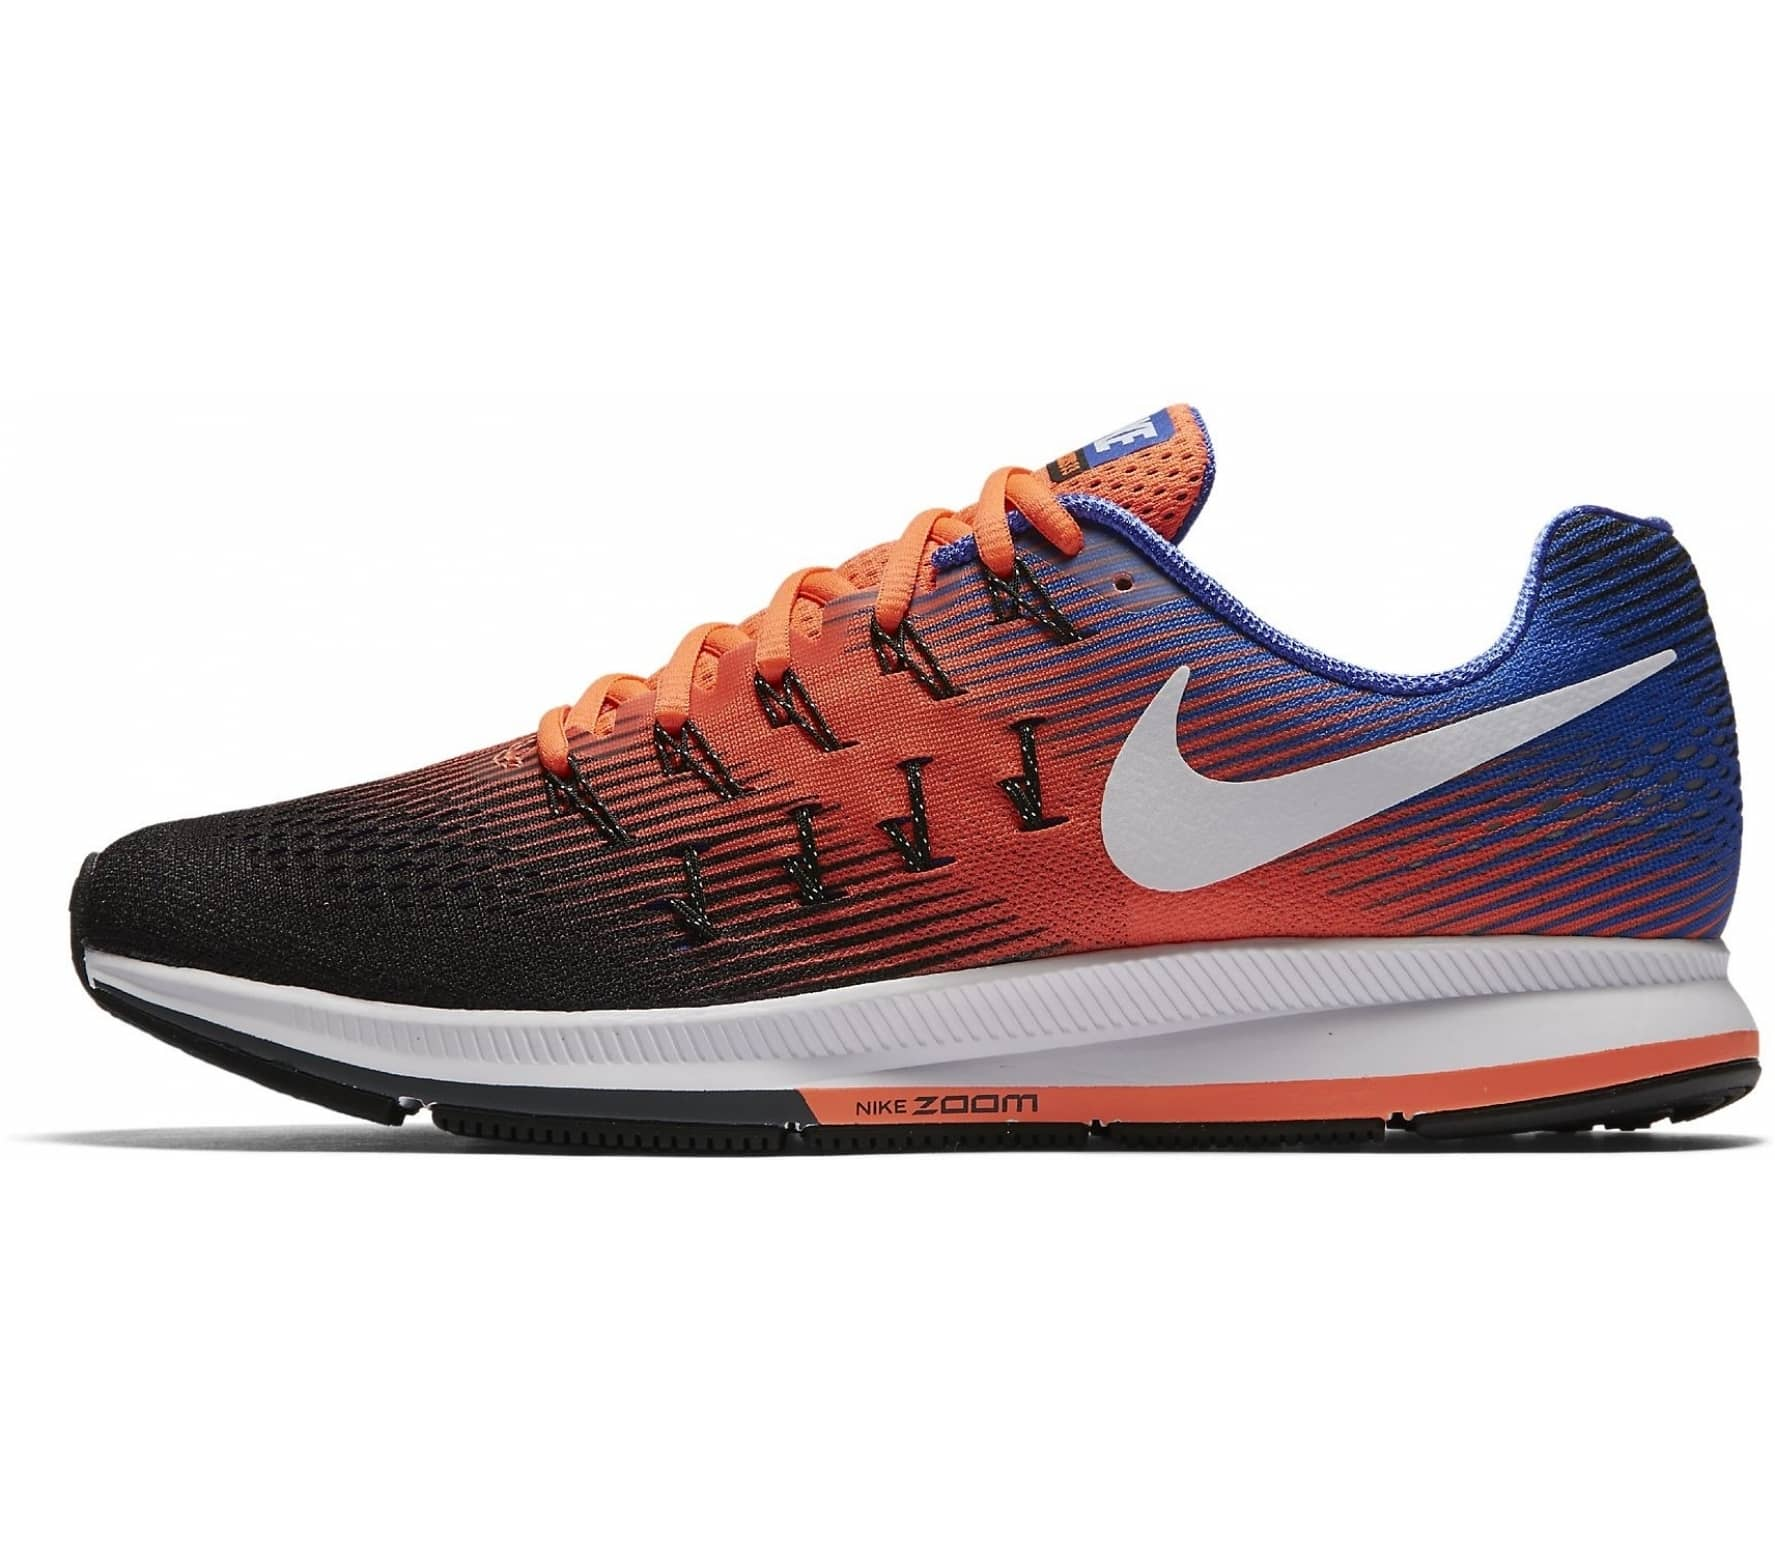 d09af9e21a9 Nike - Air Zoom Pegasus 33 men's running shoes (orange/blue) online ...